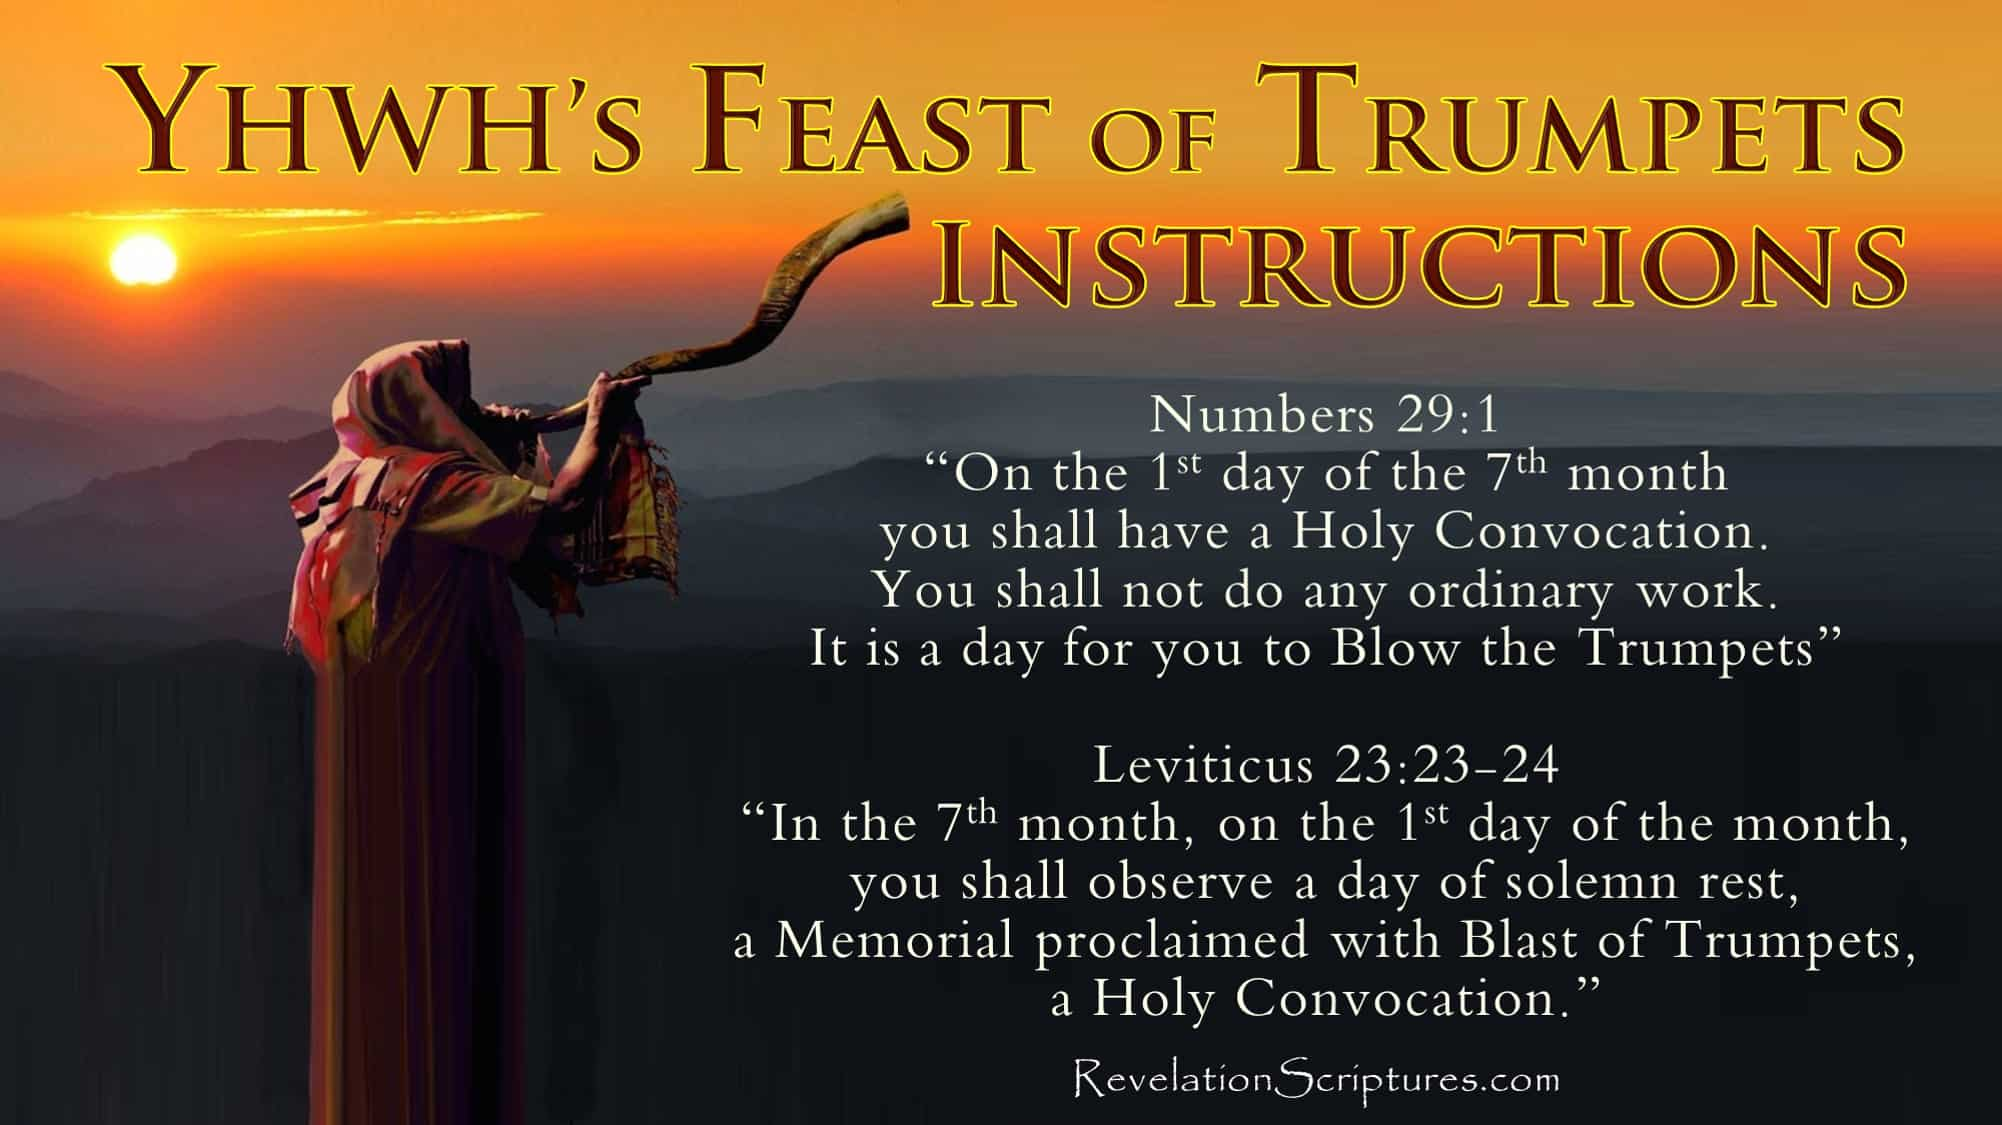 Feast of trumpets,yom teruah,rosh Hashanah,new moon,shofar,Hebrew,Israel,rapture,bible,revelation,Jesus,jubilee,old testament,heaven,day,symbol,jews,church,happy,logo,Israelites,fall,celebration,explained,sabbath,rest,lord,blast,shout,shouting,blowing trumpets,Leviticus 23,Fall Feast,appointed,time,moed,alarm,messianic,day of shouting,7 Trumpets,7 Trumpets in Revelation,7 Trumpets of Revelation,Seven Trumpets,Seven Trumpets Revelation,7 Angels given 7 Trumpets,7 Angels blow 7 Trumpets,Natzarim,2nd Coming,Second Coming,Numbers 29,Fulfillment in Revelation,Fulfillment,Feast of Trumpets Revelation,Yom teruah Revelation,Future Fulfillment in Revelation,Book of Revelation,Apocalypse,memorial,holy convecation,Numbers 21.9,Num 29,Lev 23,Leviticus 23,Blast of Trumpets,first day,seventh month